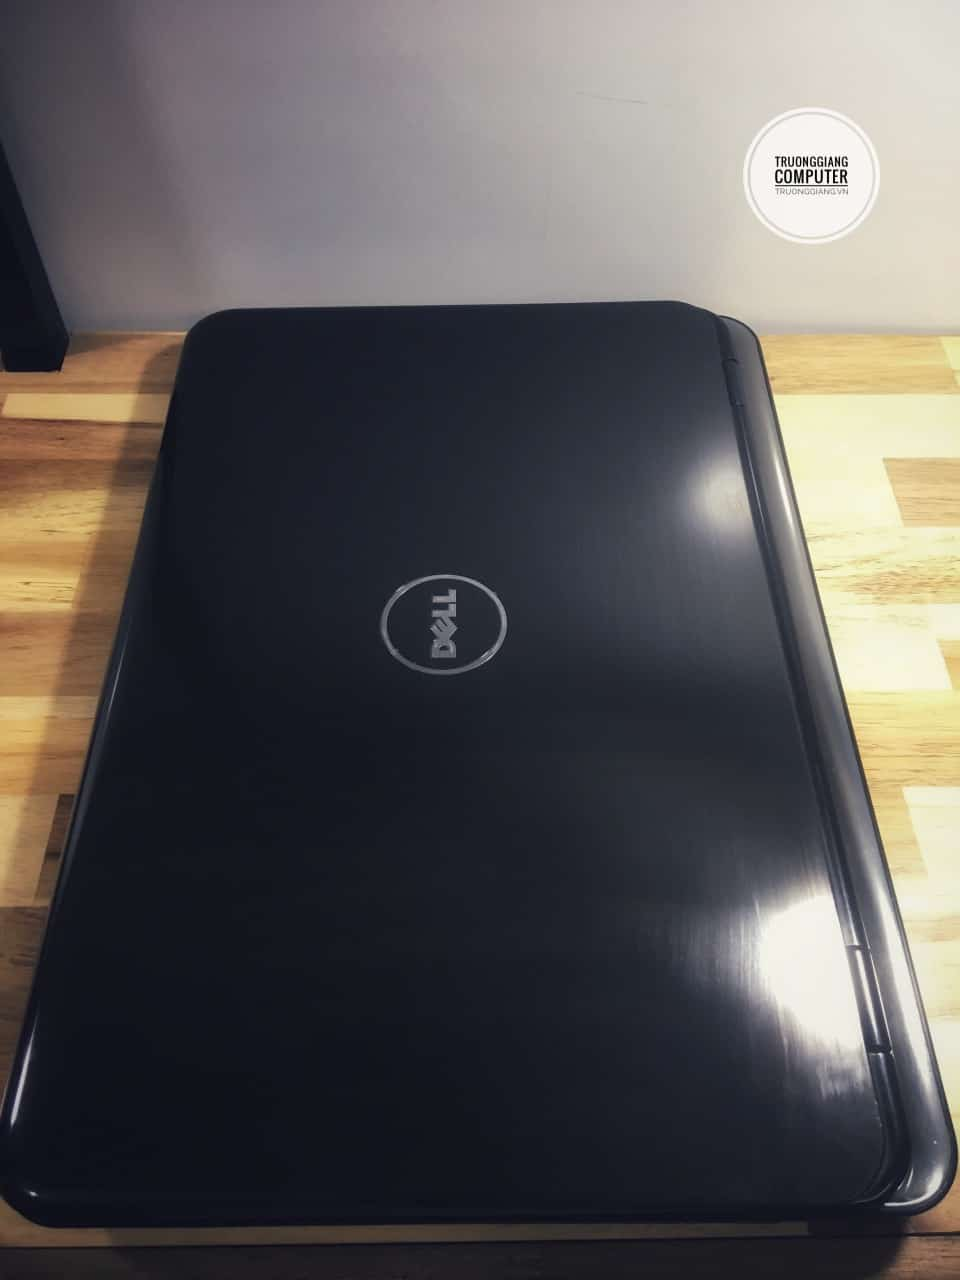 Laptop cũ Dell Inspiron 15R N5010 core i5